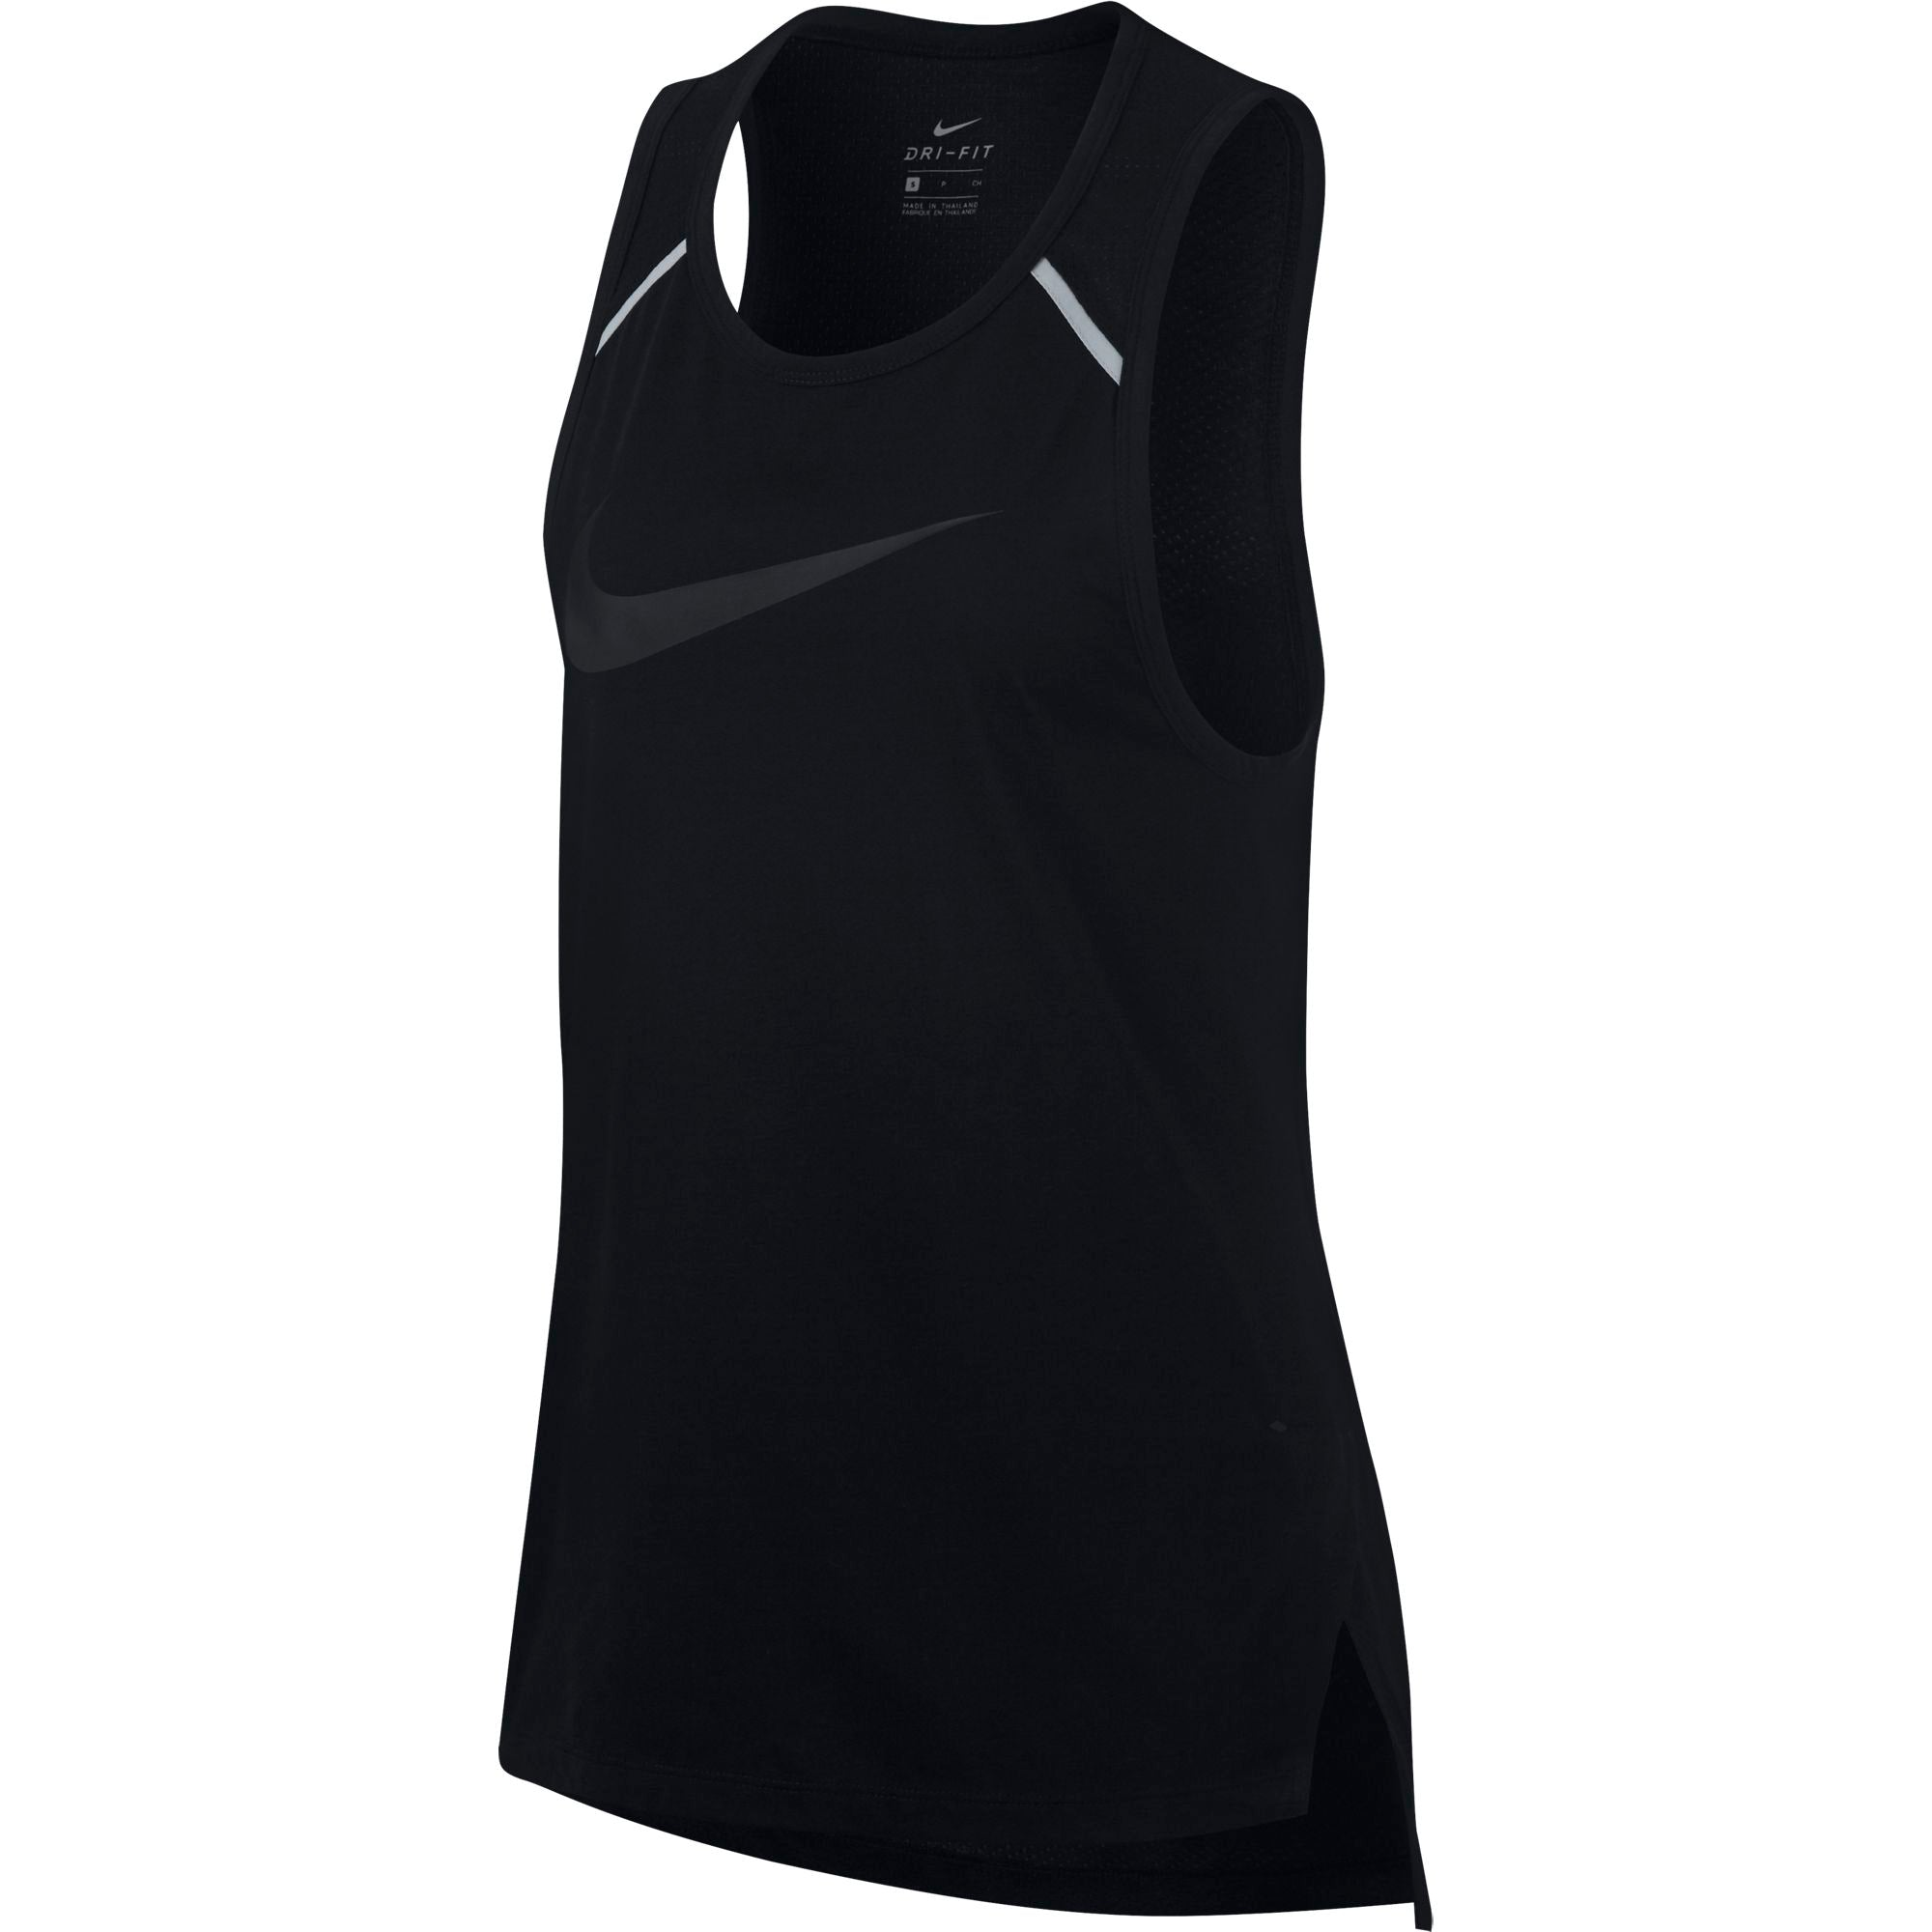 Nike Womens Basketball Breathe Elite Top - NK-890513-010